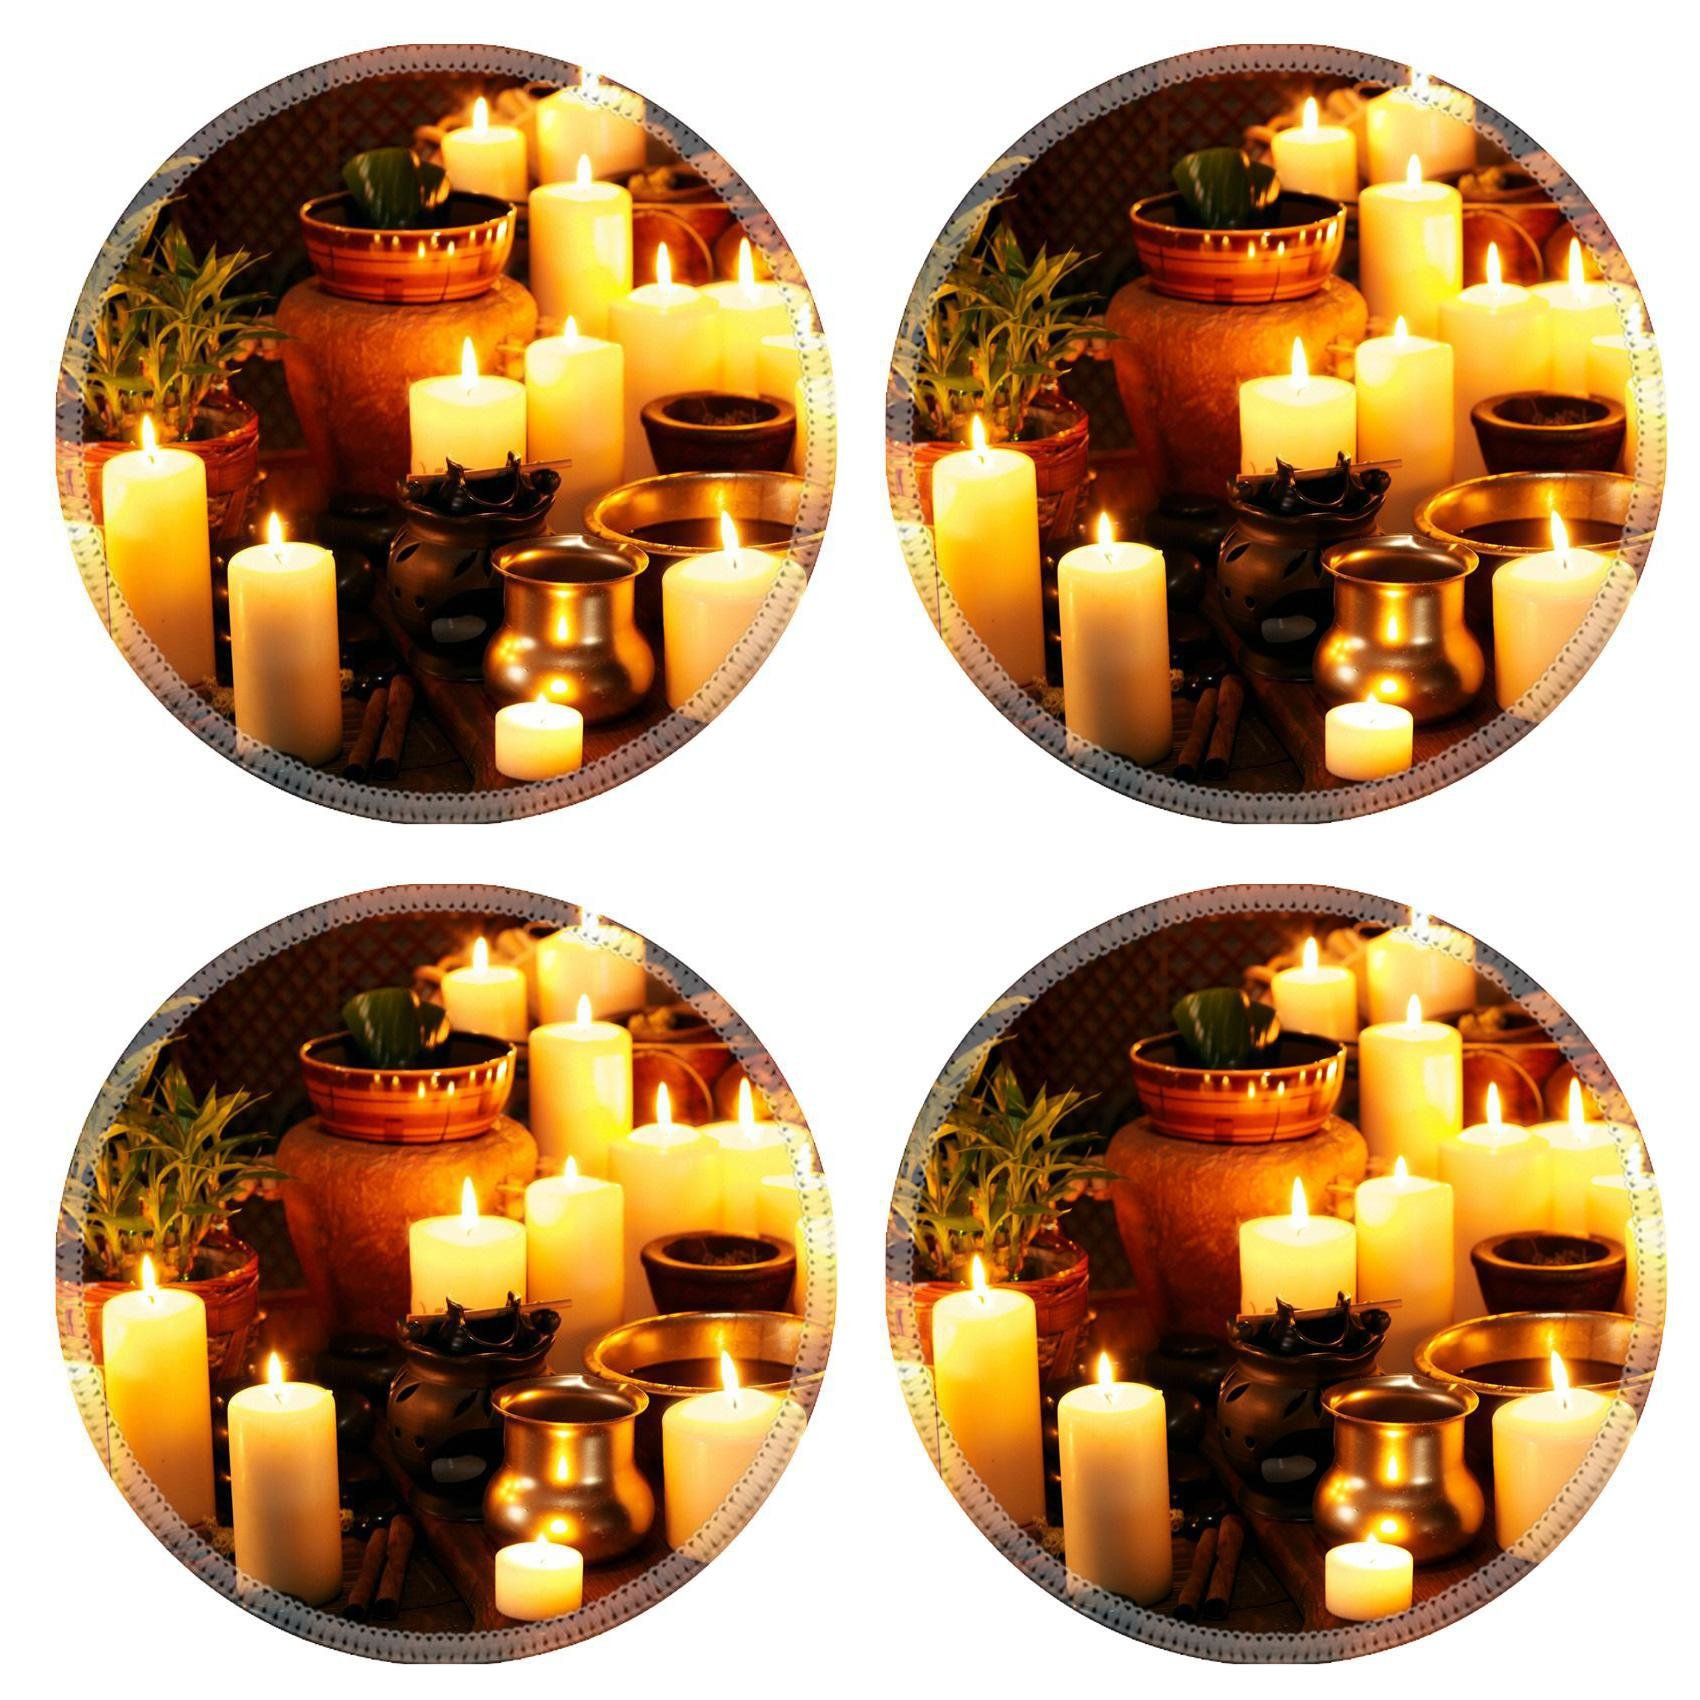 Liili Round Coasters Non-Slip Natural Rubber Desk Pads IMAGE ID: 22331954 Luxury ayurvedic spa massage still life